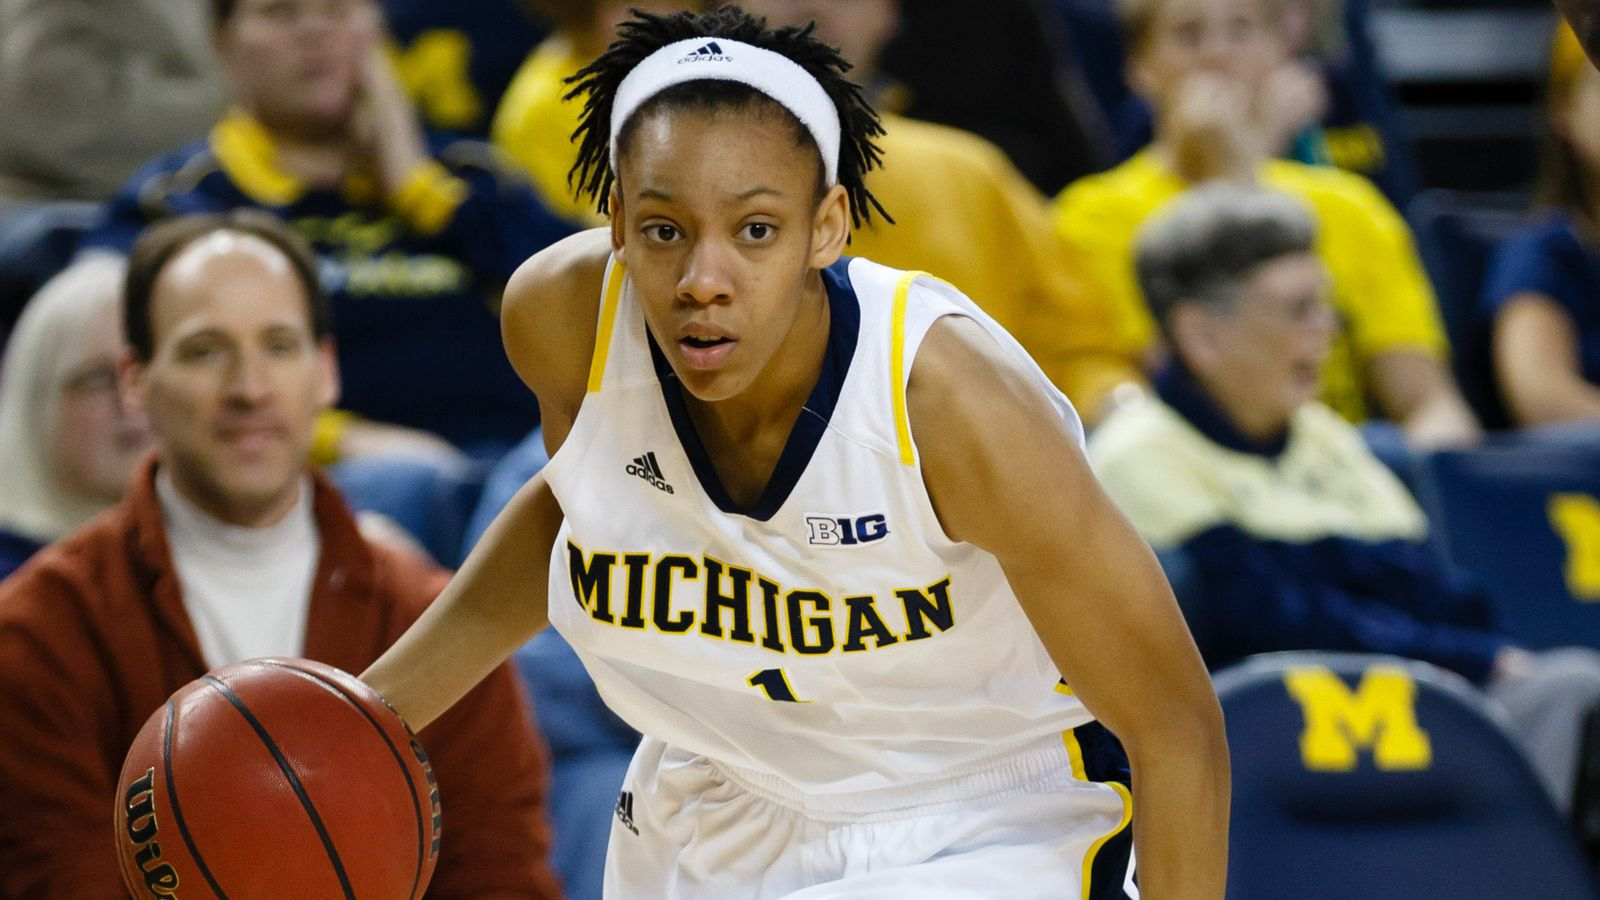 Michigan guard Brenae Harris decides to transfer to Toledo ...